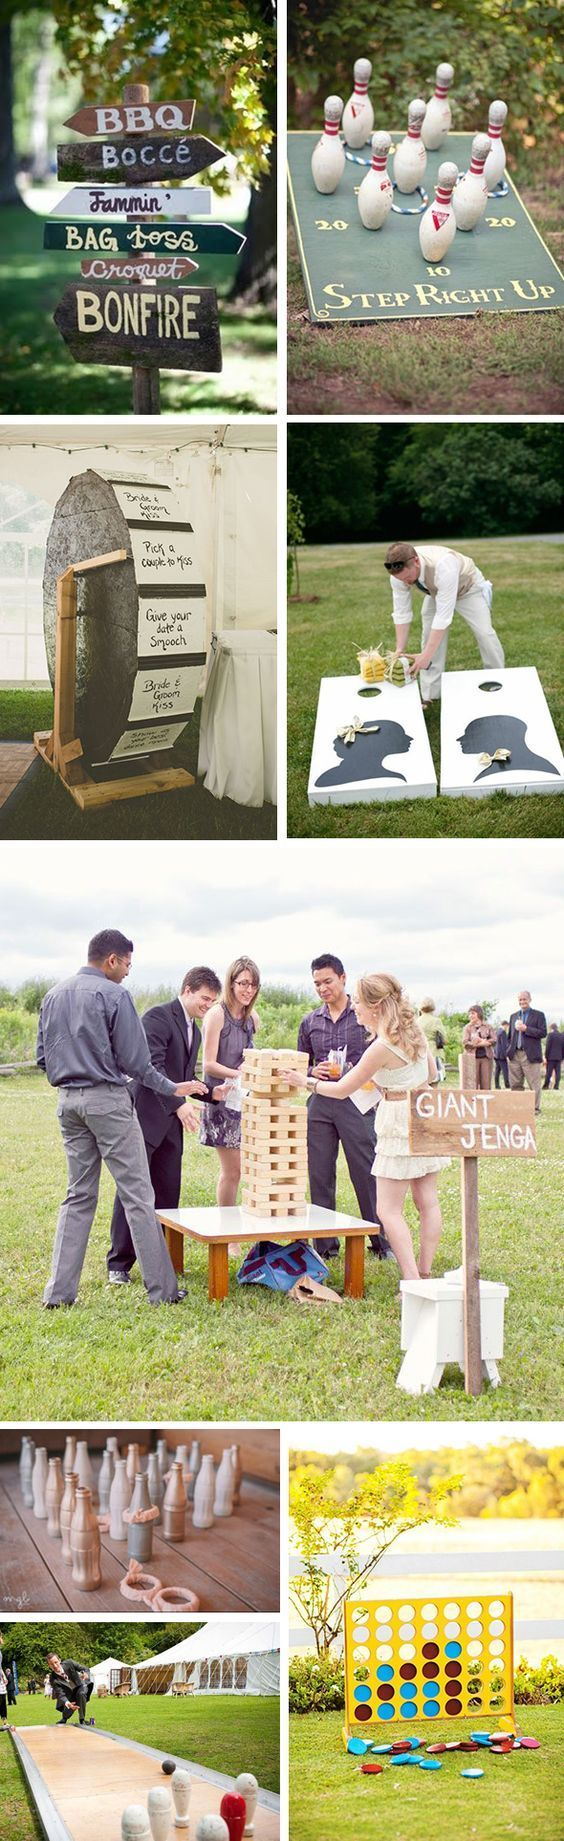 Wedding Reception Game Ideas / http://www.himisspuff.com/wedding-reception-game-ideas/